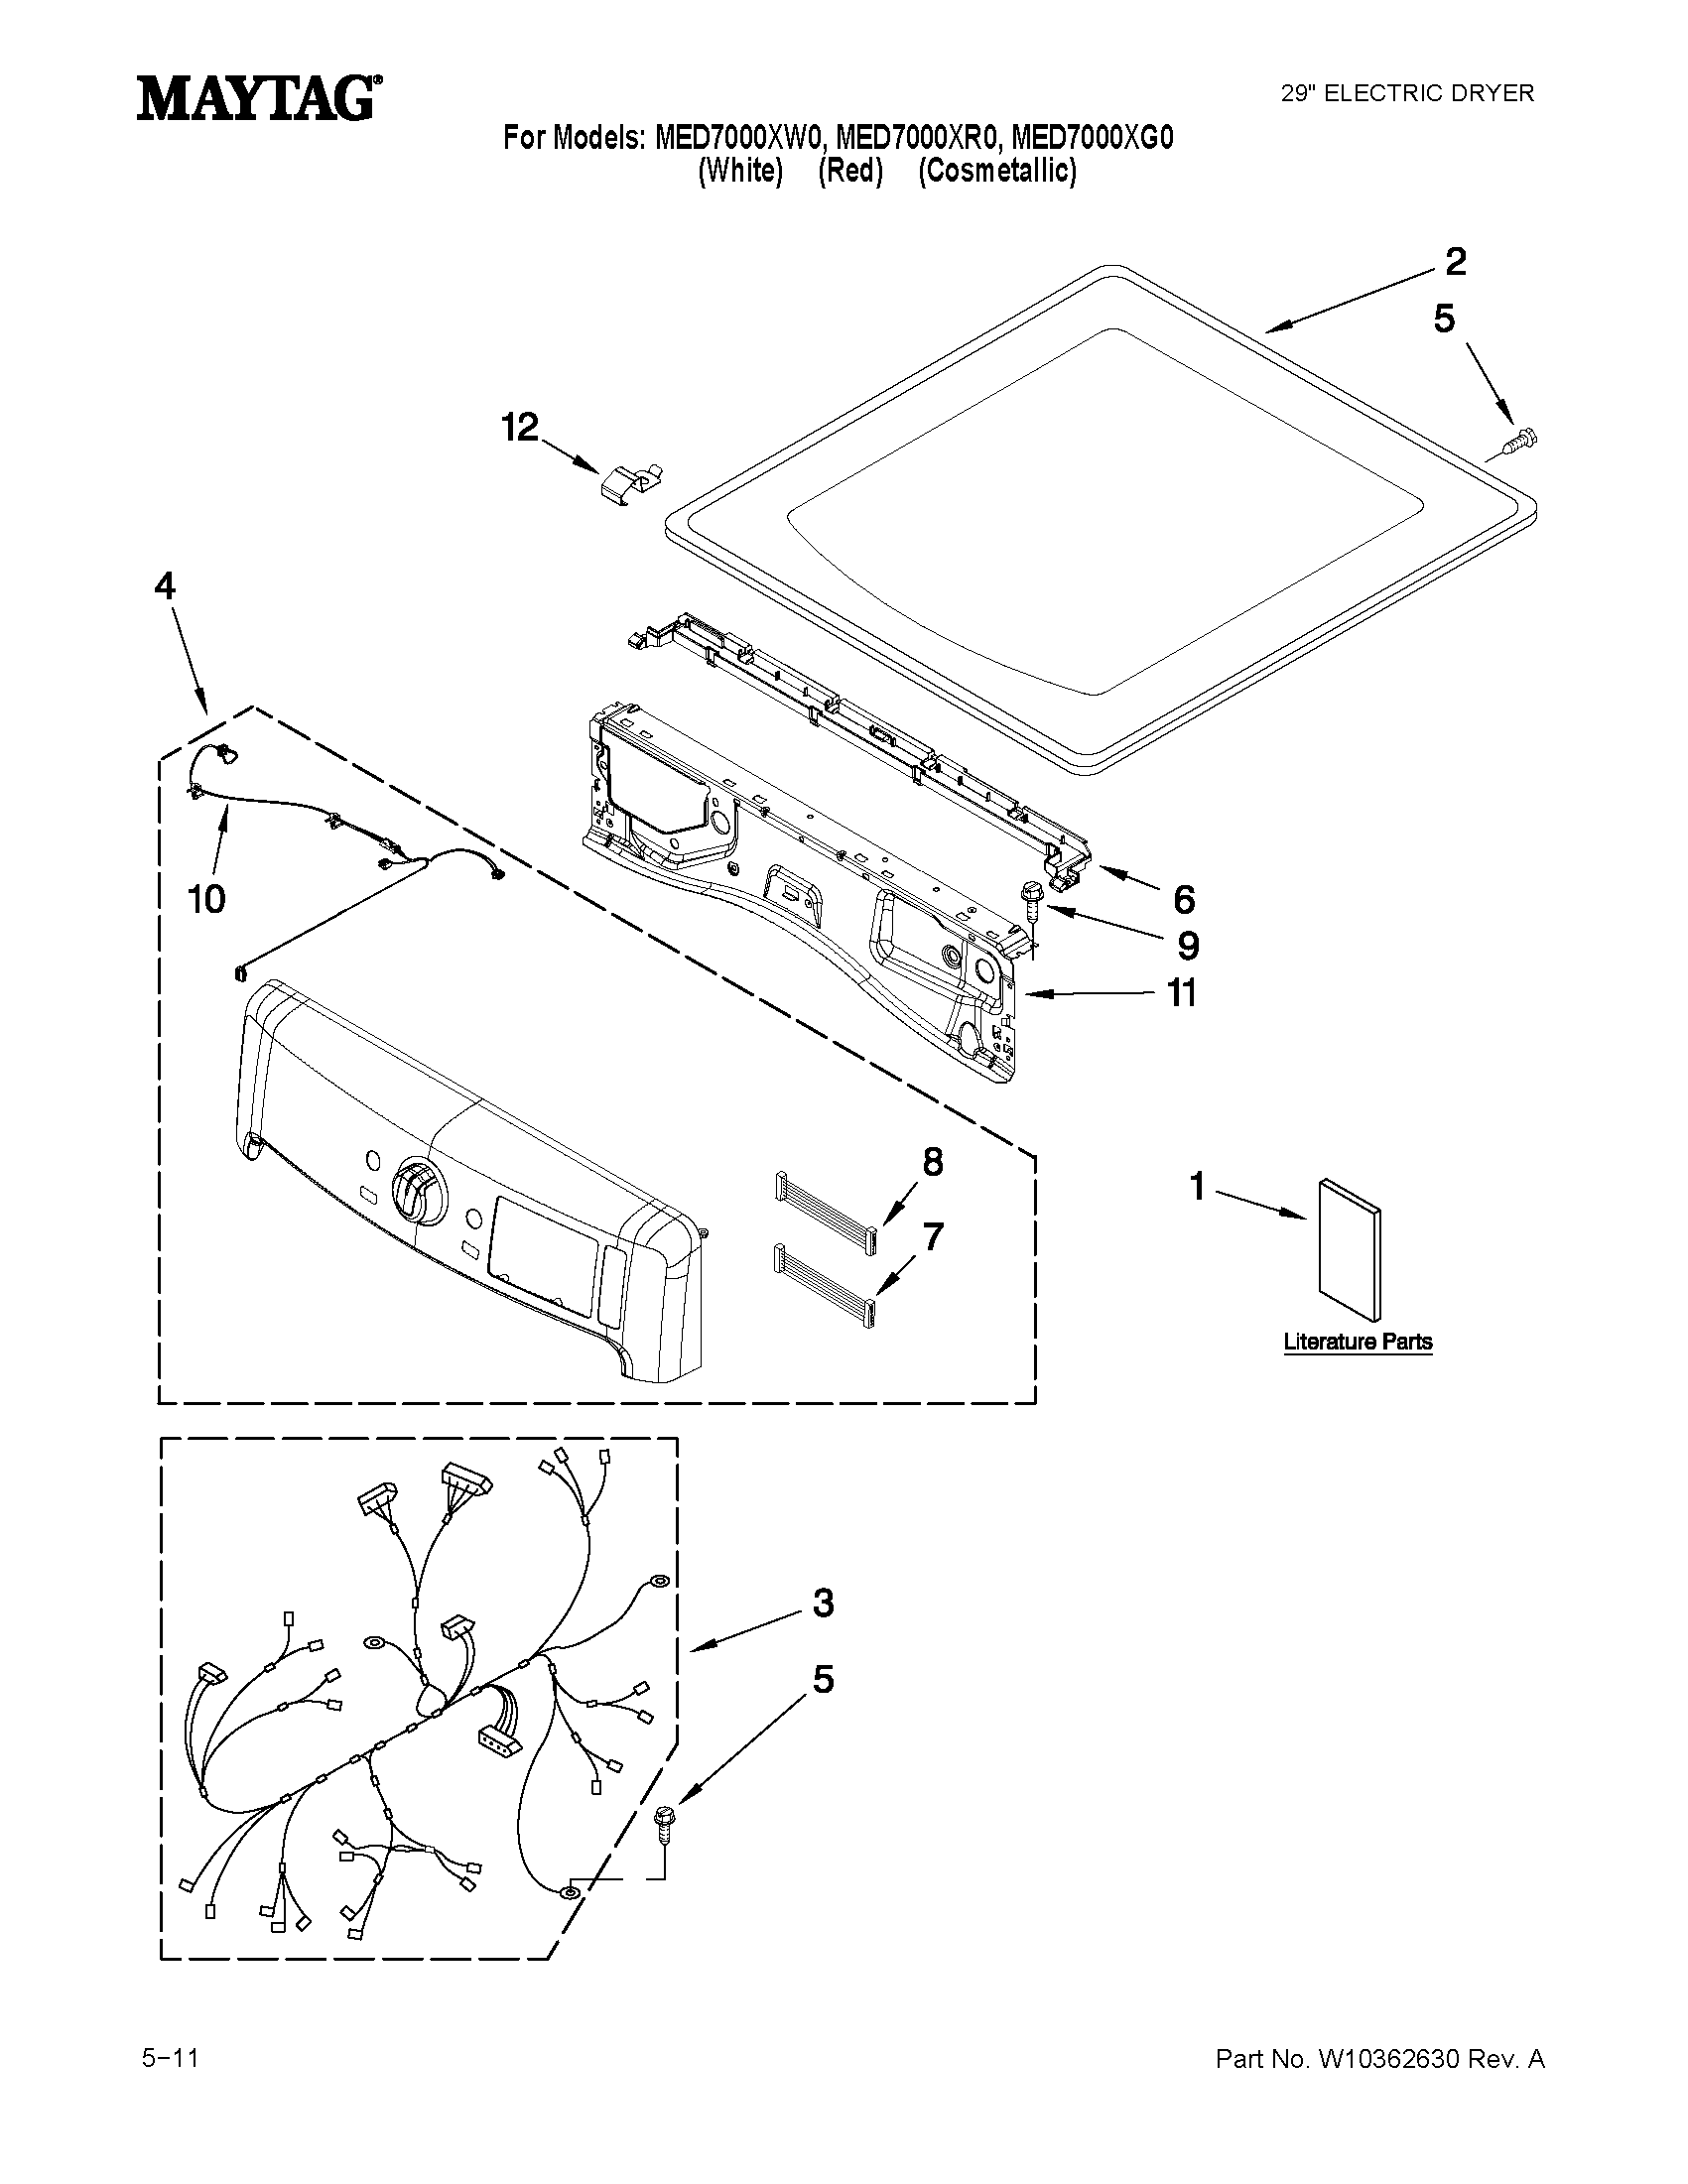 Maytag MED7000XR0 top and console parts diagram